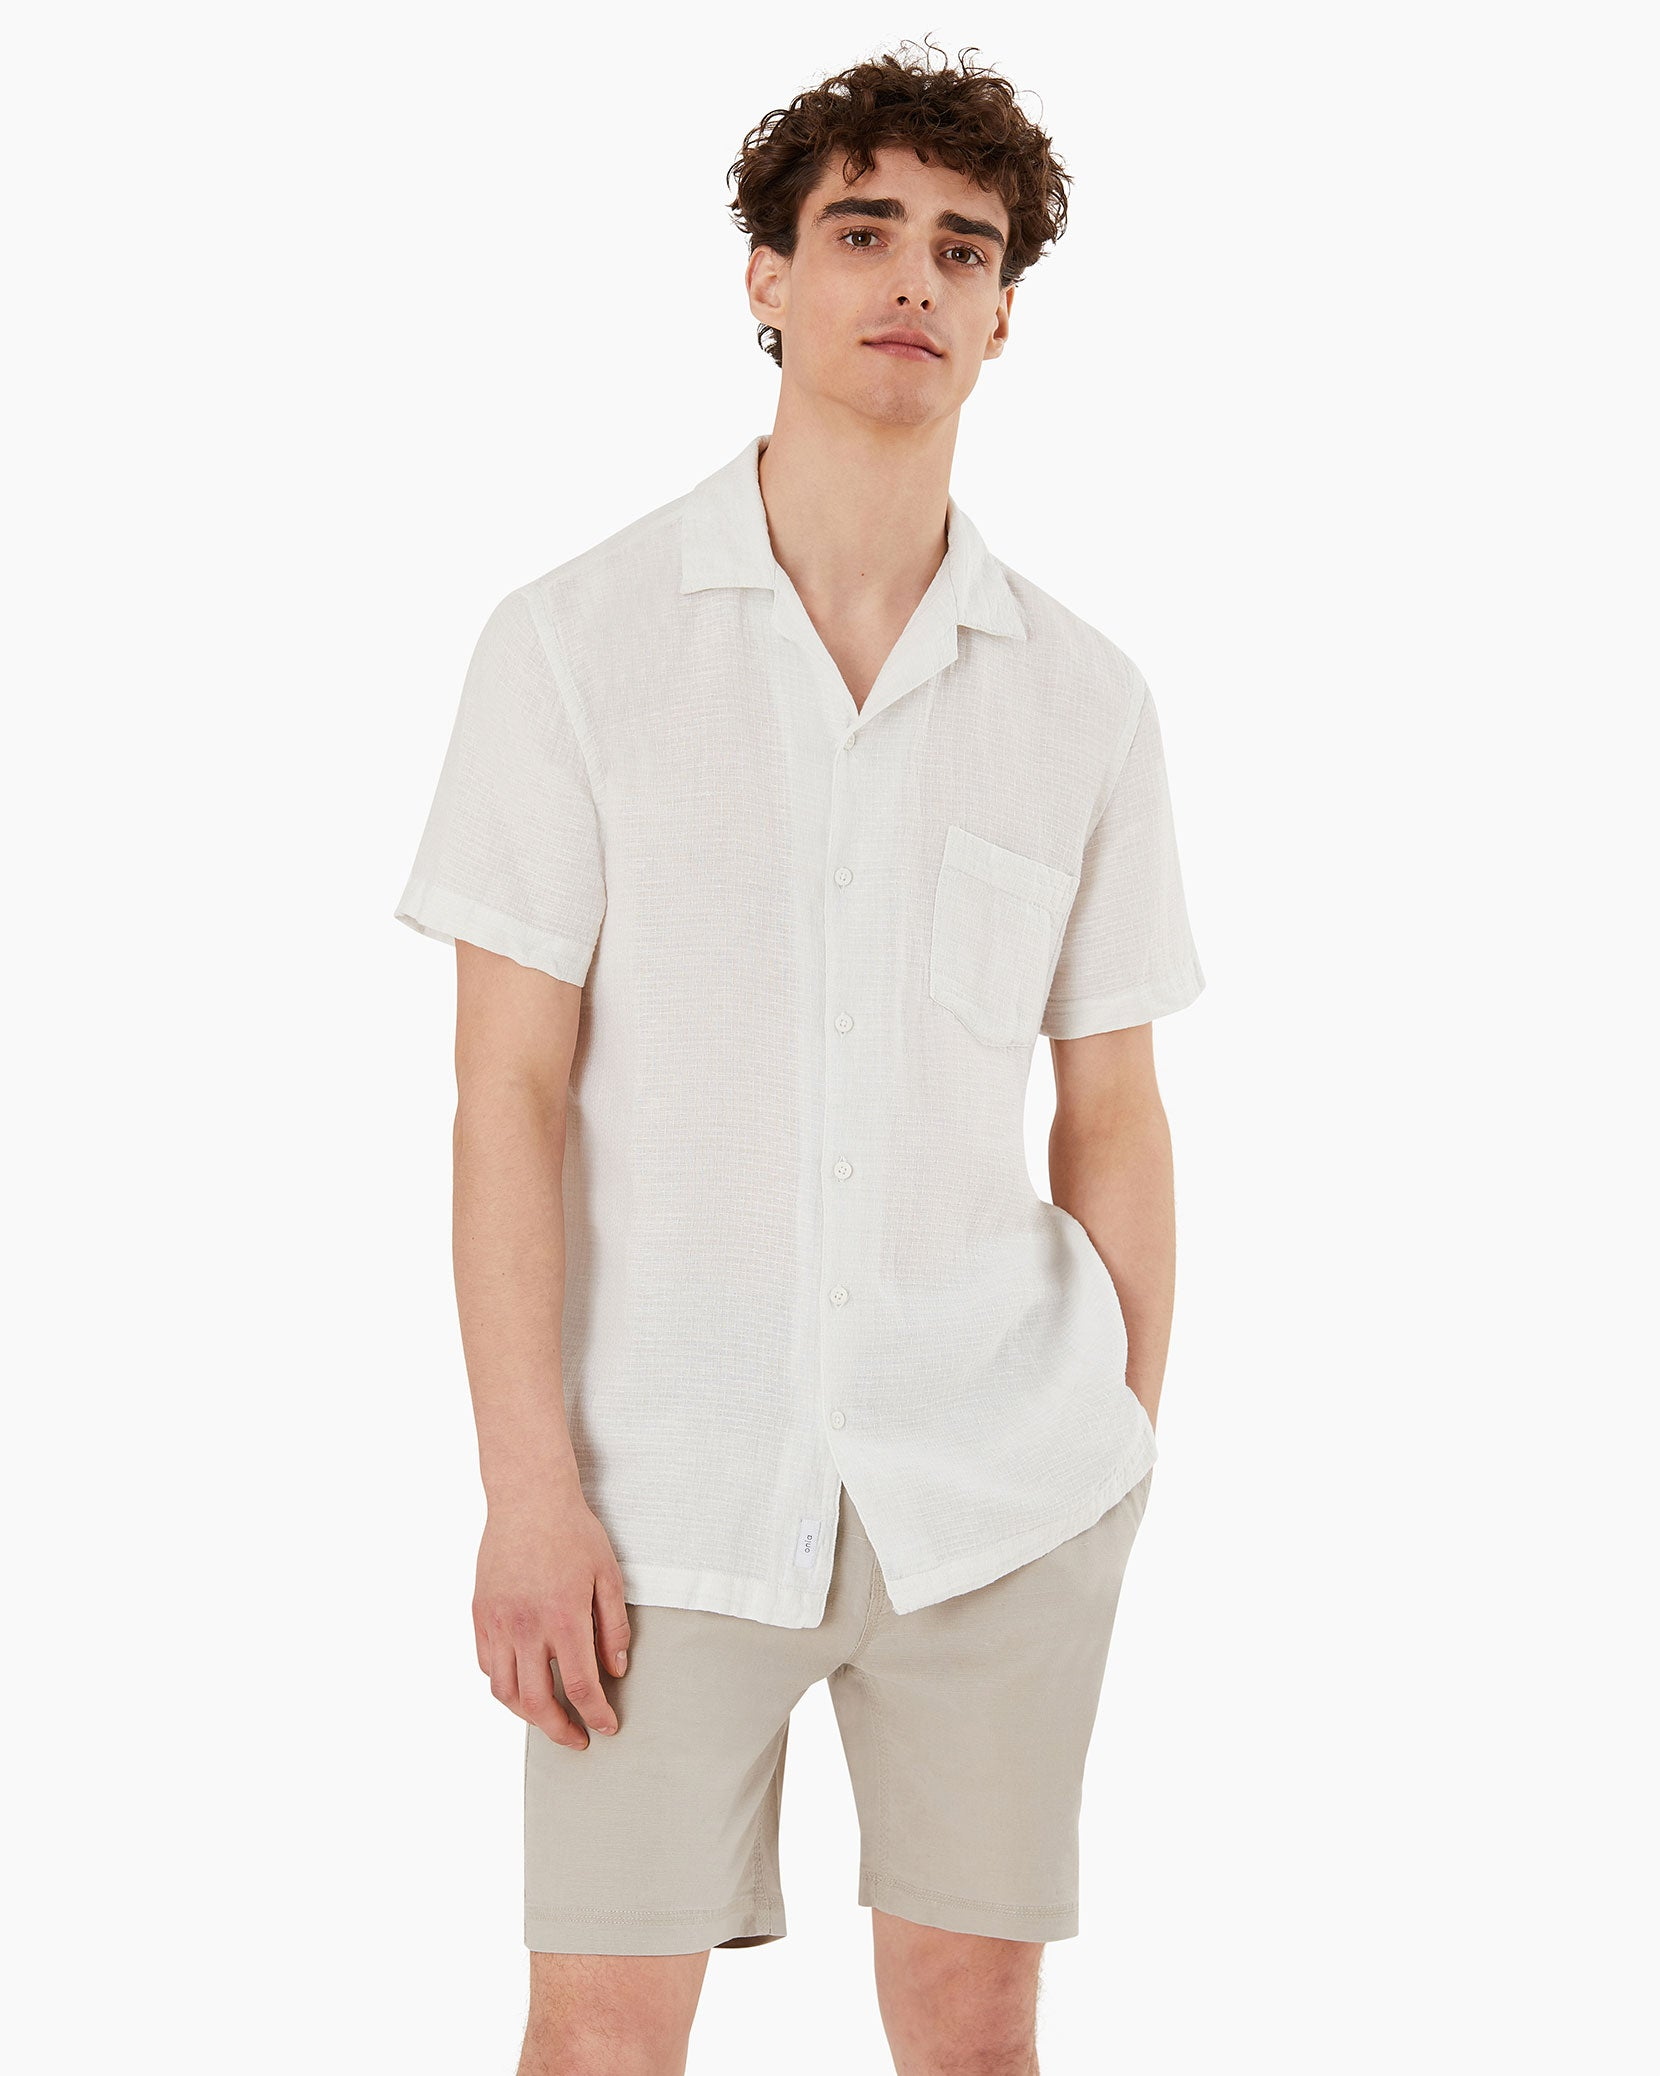 Vacation Checked Dobby Shirt in White - 3 - Onia